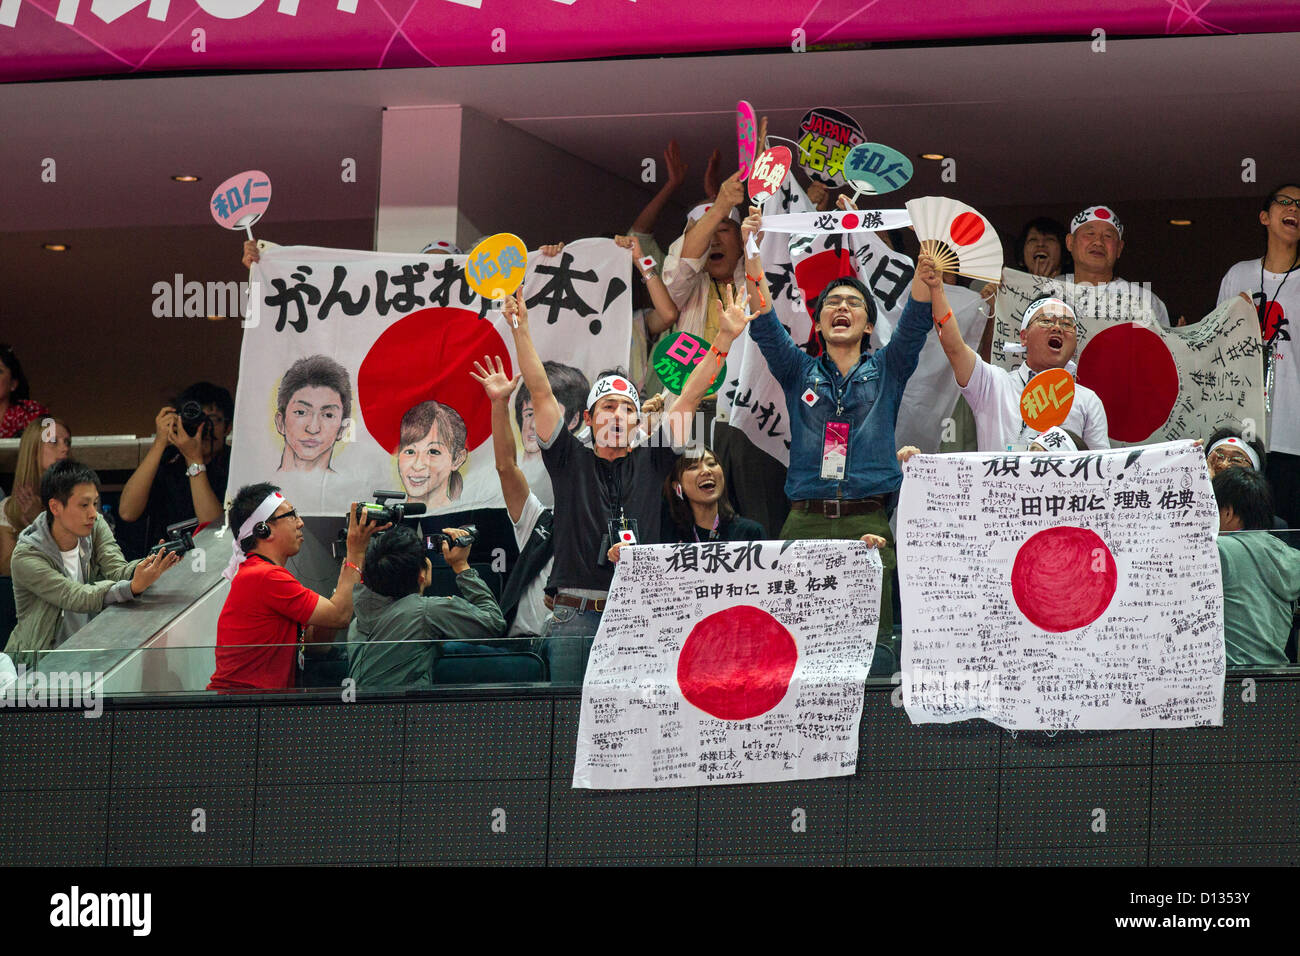 Japanese fans during the Men's Gymnastics Team Final at t he Olympic Summer Games, London 2012 - Stock Image